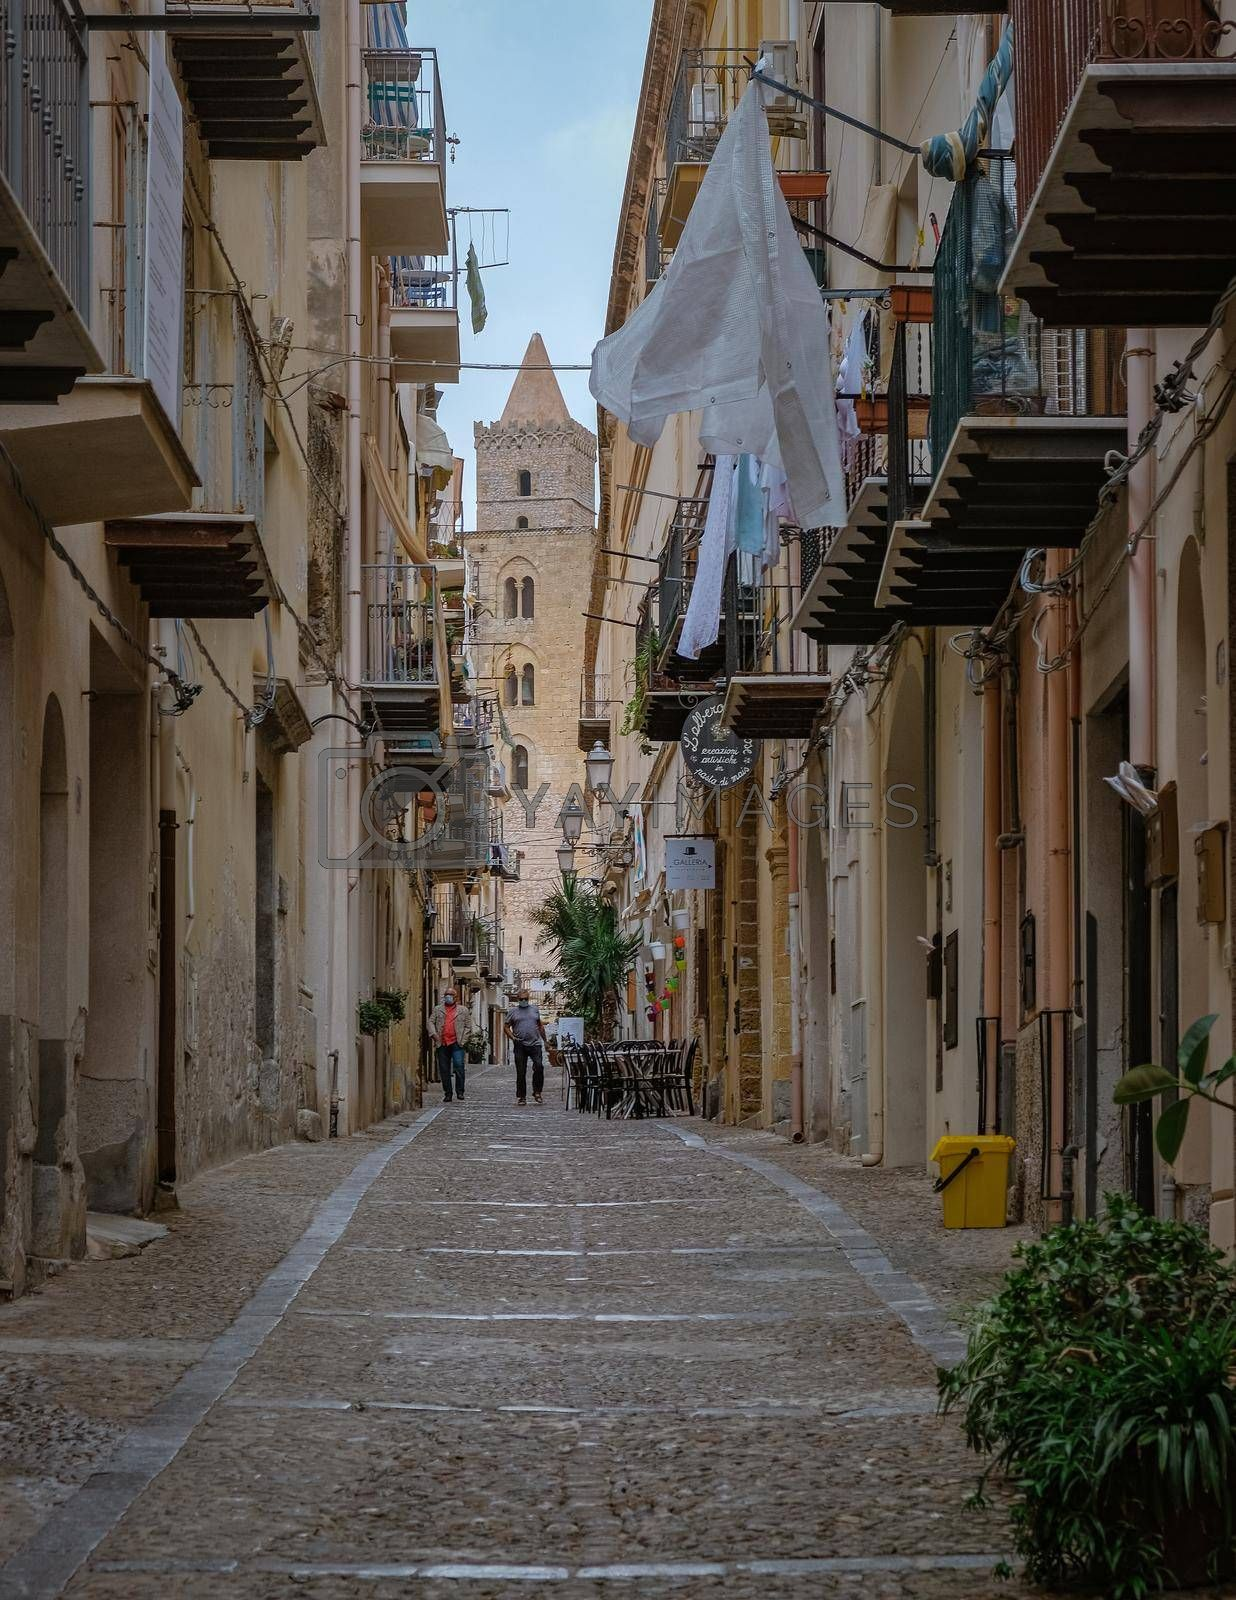 Royalty free image of Cefalu, medieval village of Sicily island, Province of Palermo, Italy by fokkebok